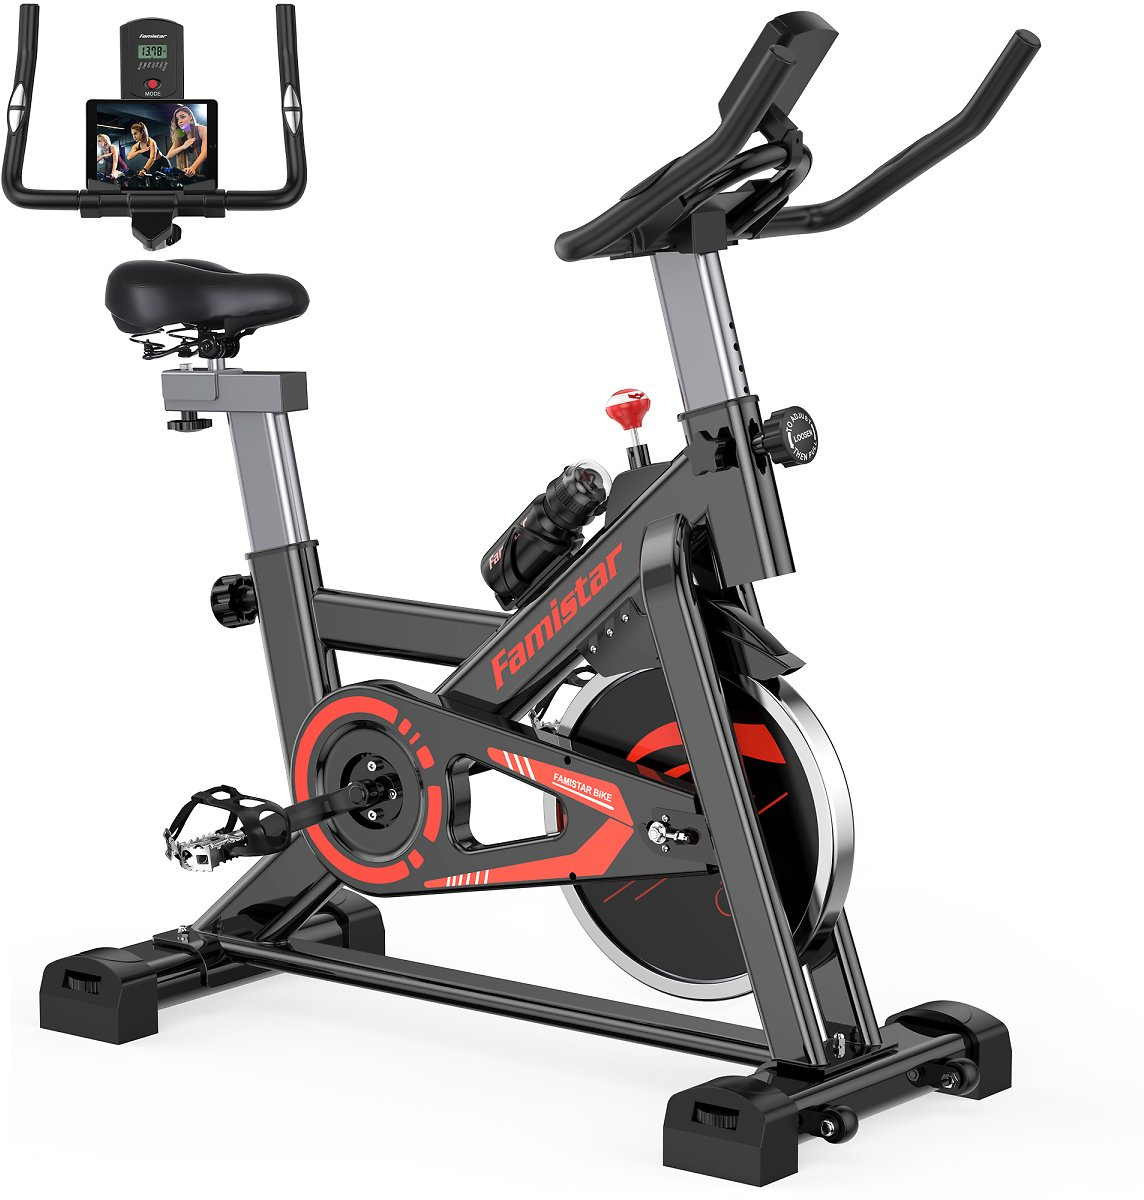 Famistar Exercise Bike Indoor Cycling Stationary Bike - Red